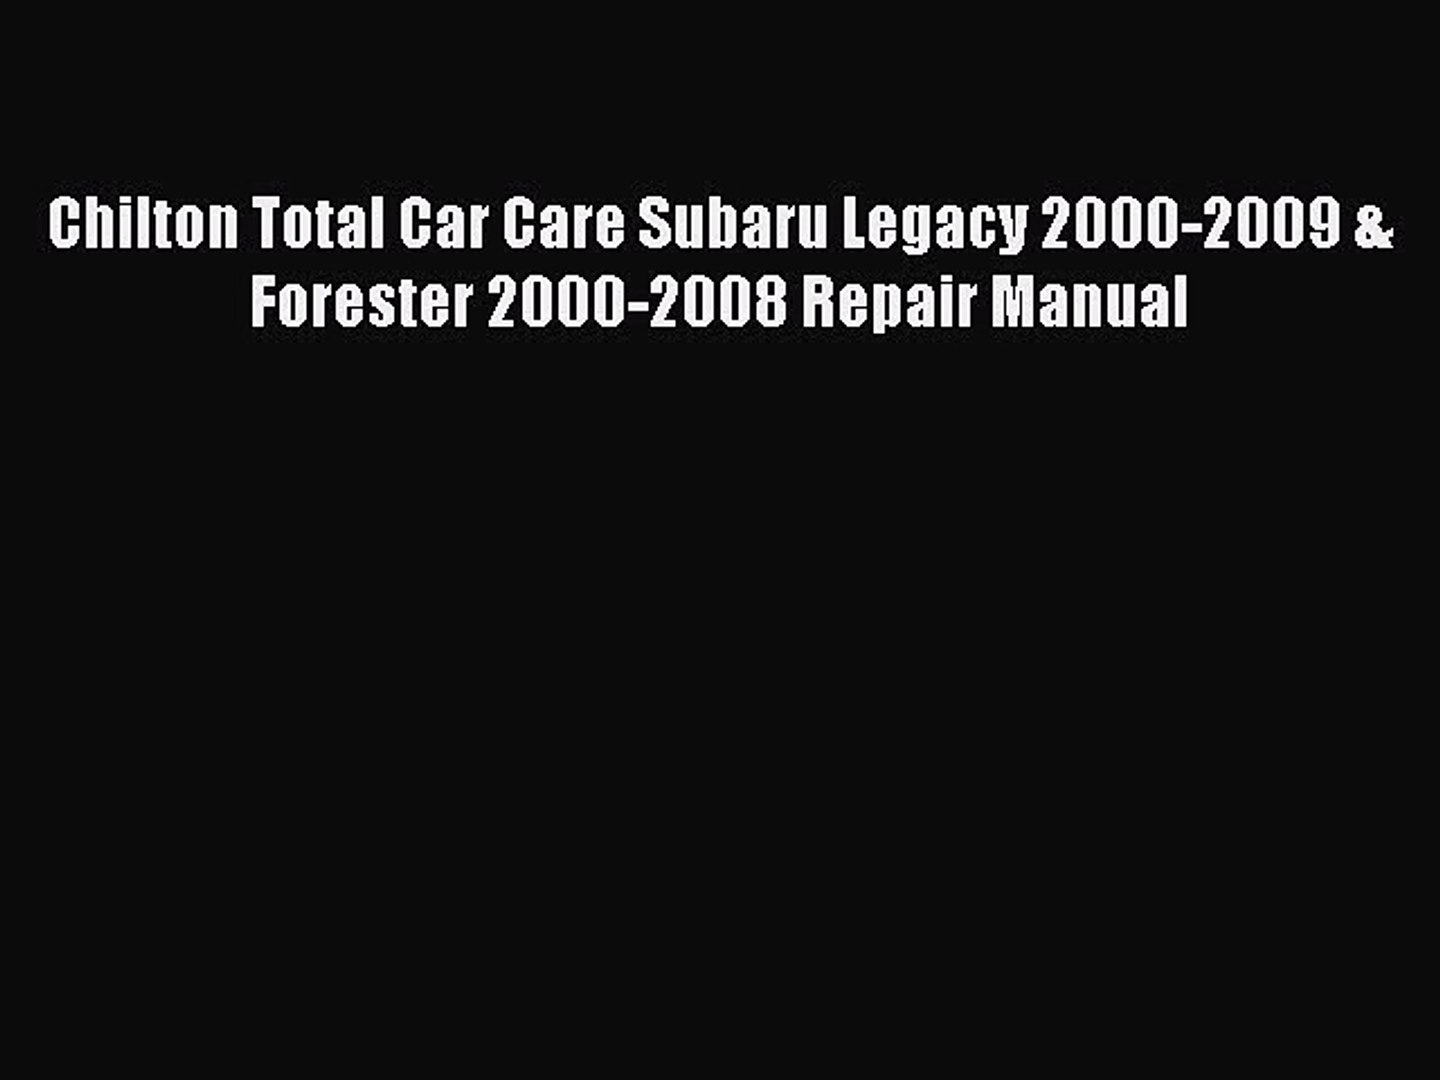 [Read Book] Chilton Total Car Care Subaru Legacy 2000-2009 & Forester 2000-2008 Repair Manual